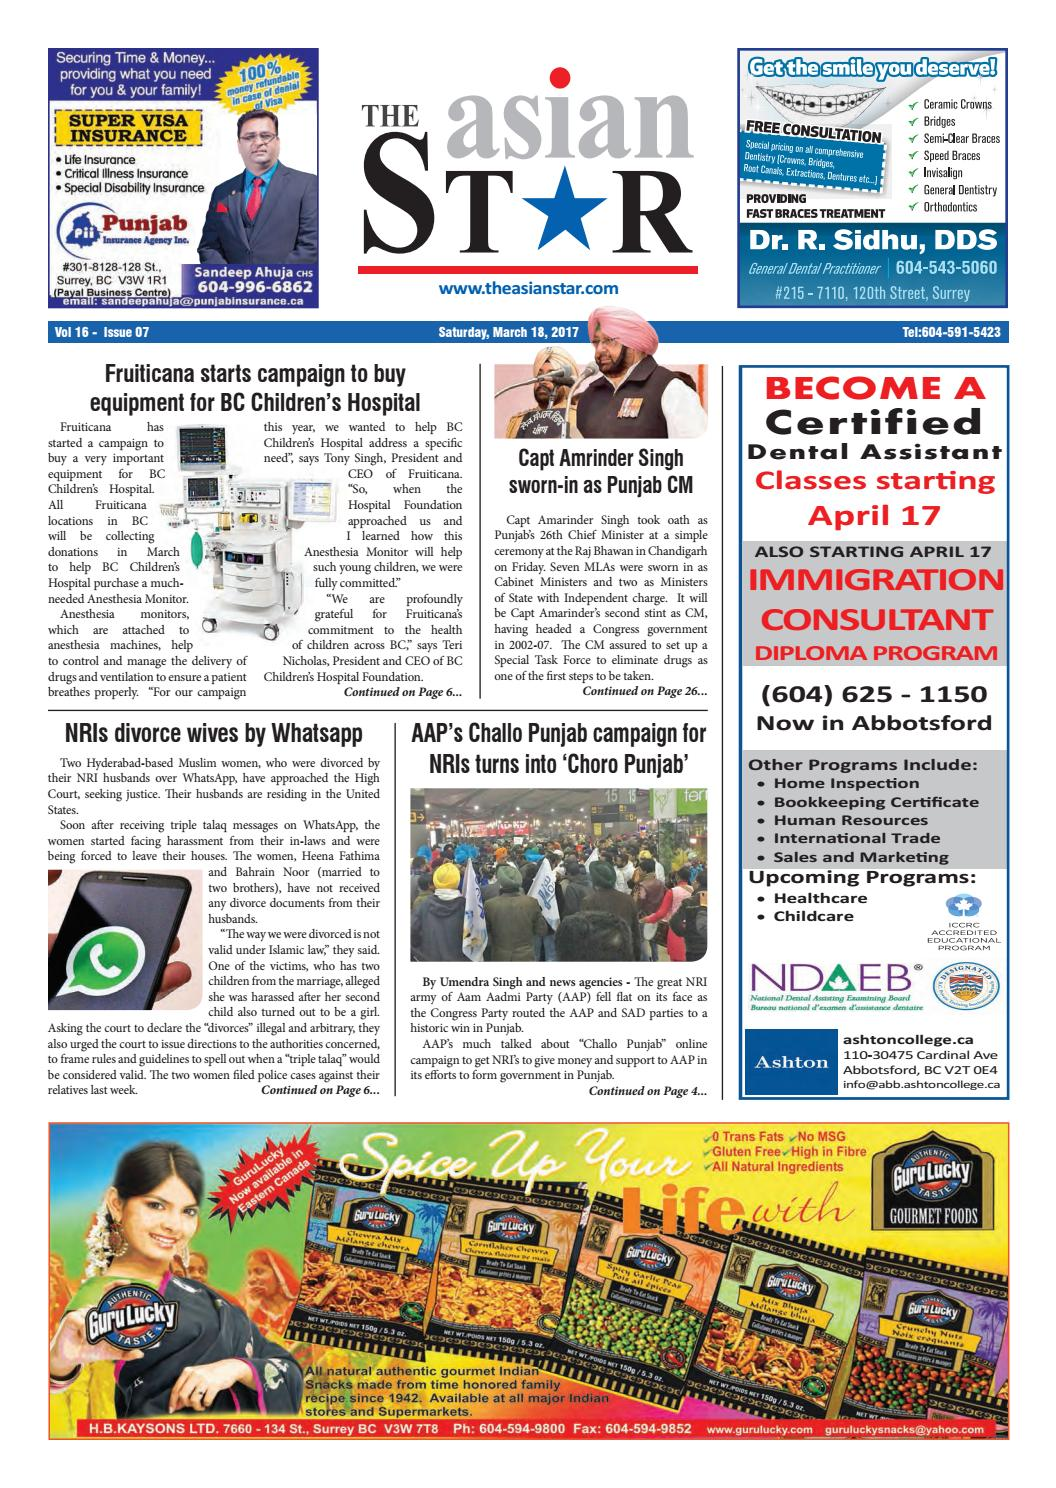 Asian Star - March 18, 2017 by The Asian Star Newspaper - issuu